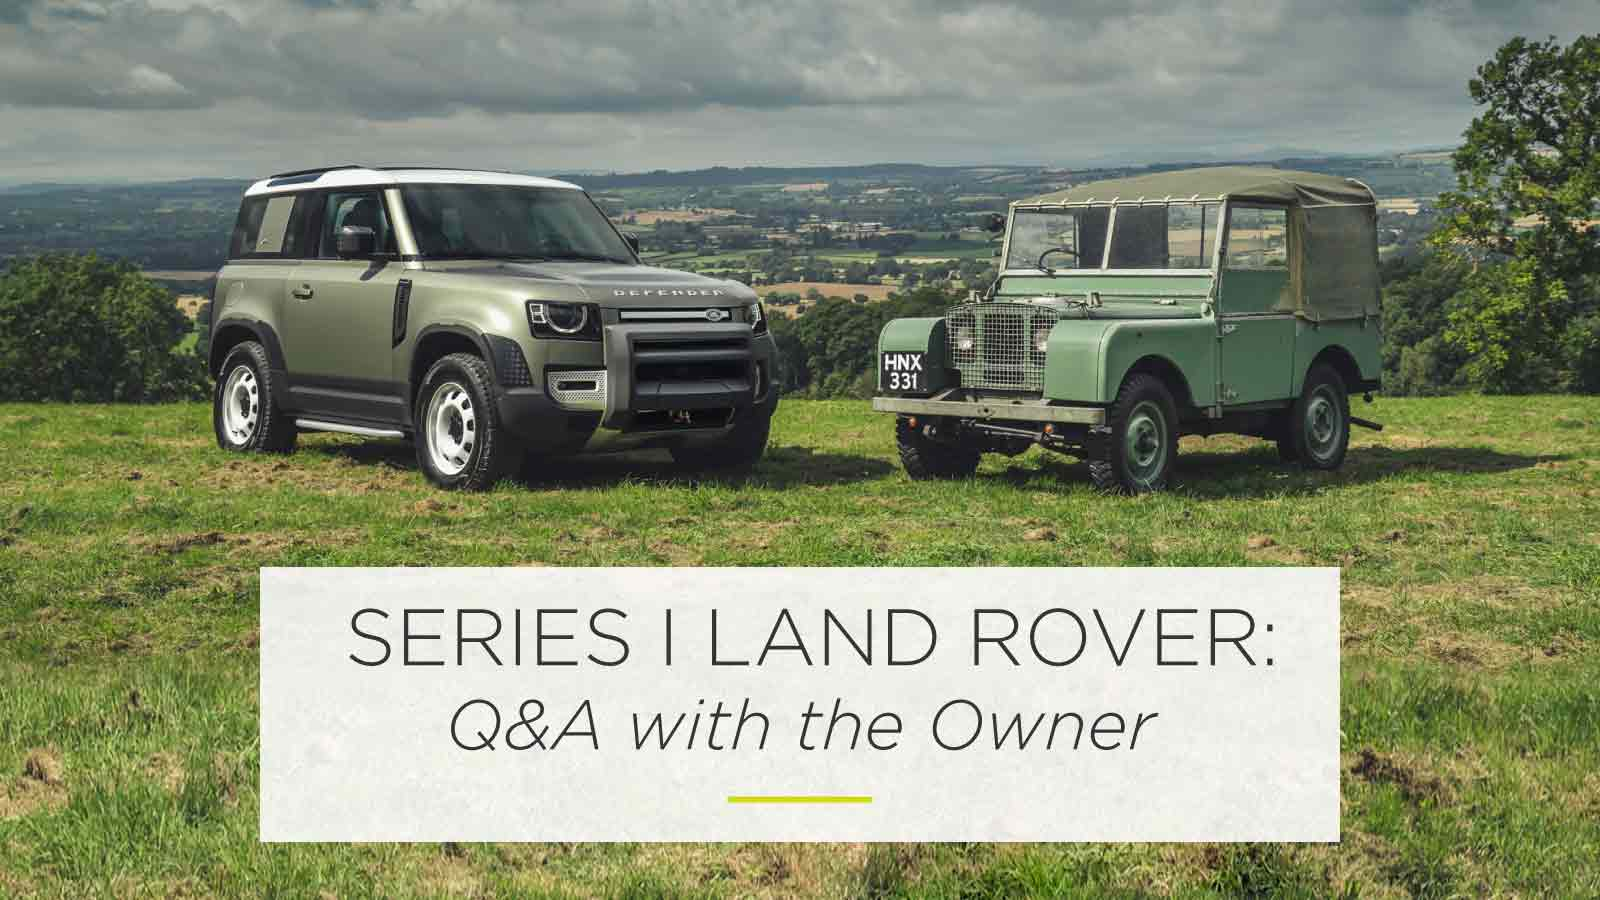 Series I Land Rover: Q&A with the Owner